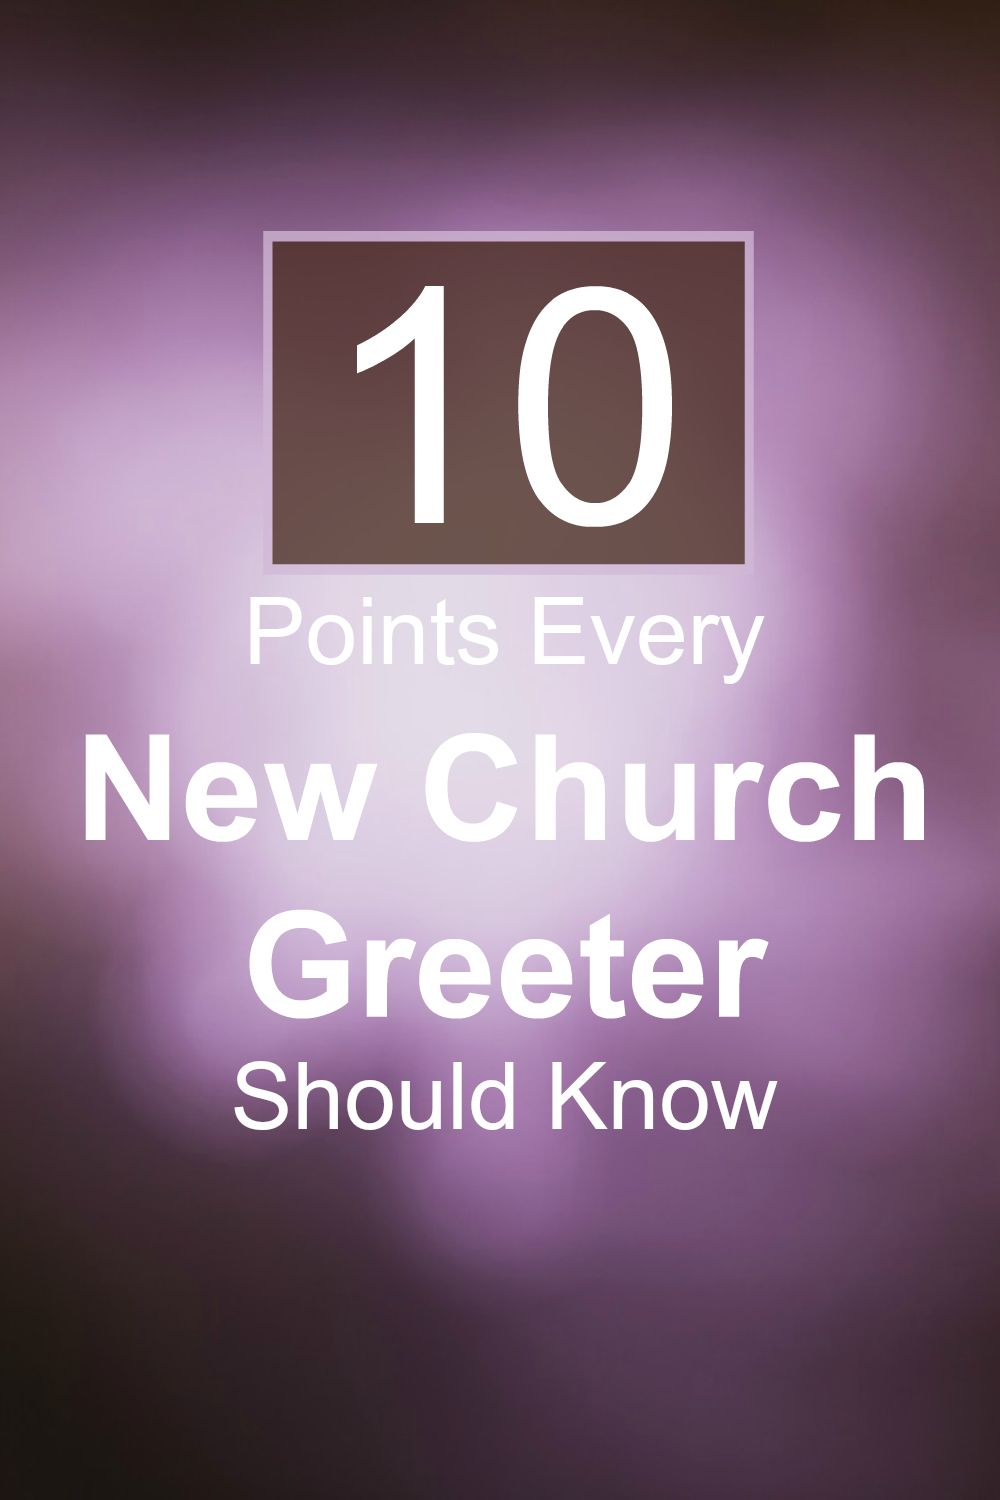 Free material for church greeter training church growth free material for church greeter training church growth pinterest churches church ideas and free kristyandbryce Image collections